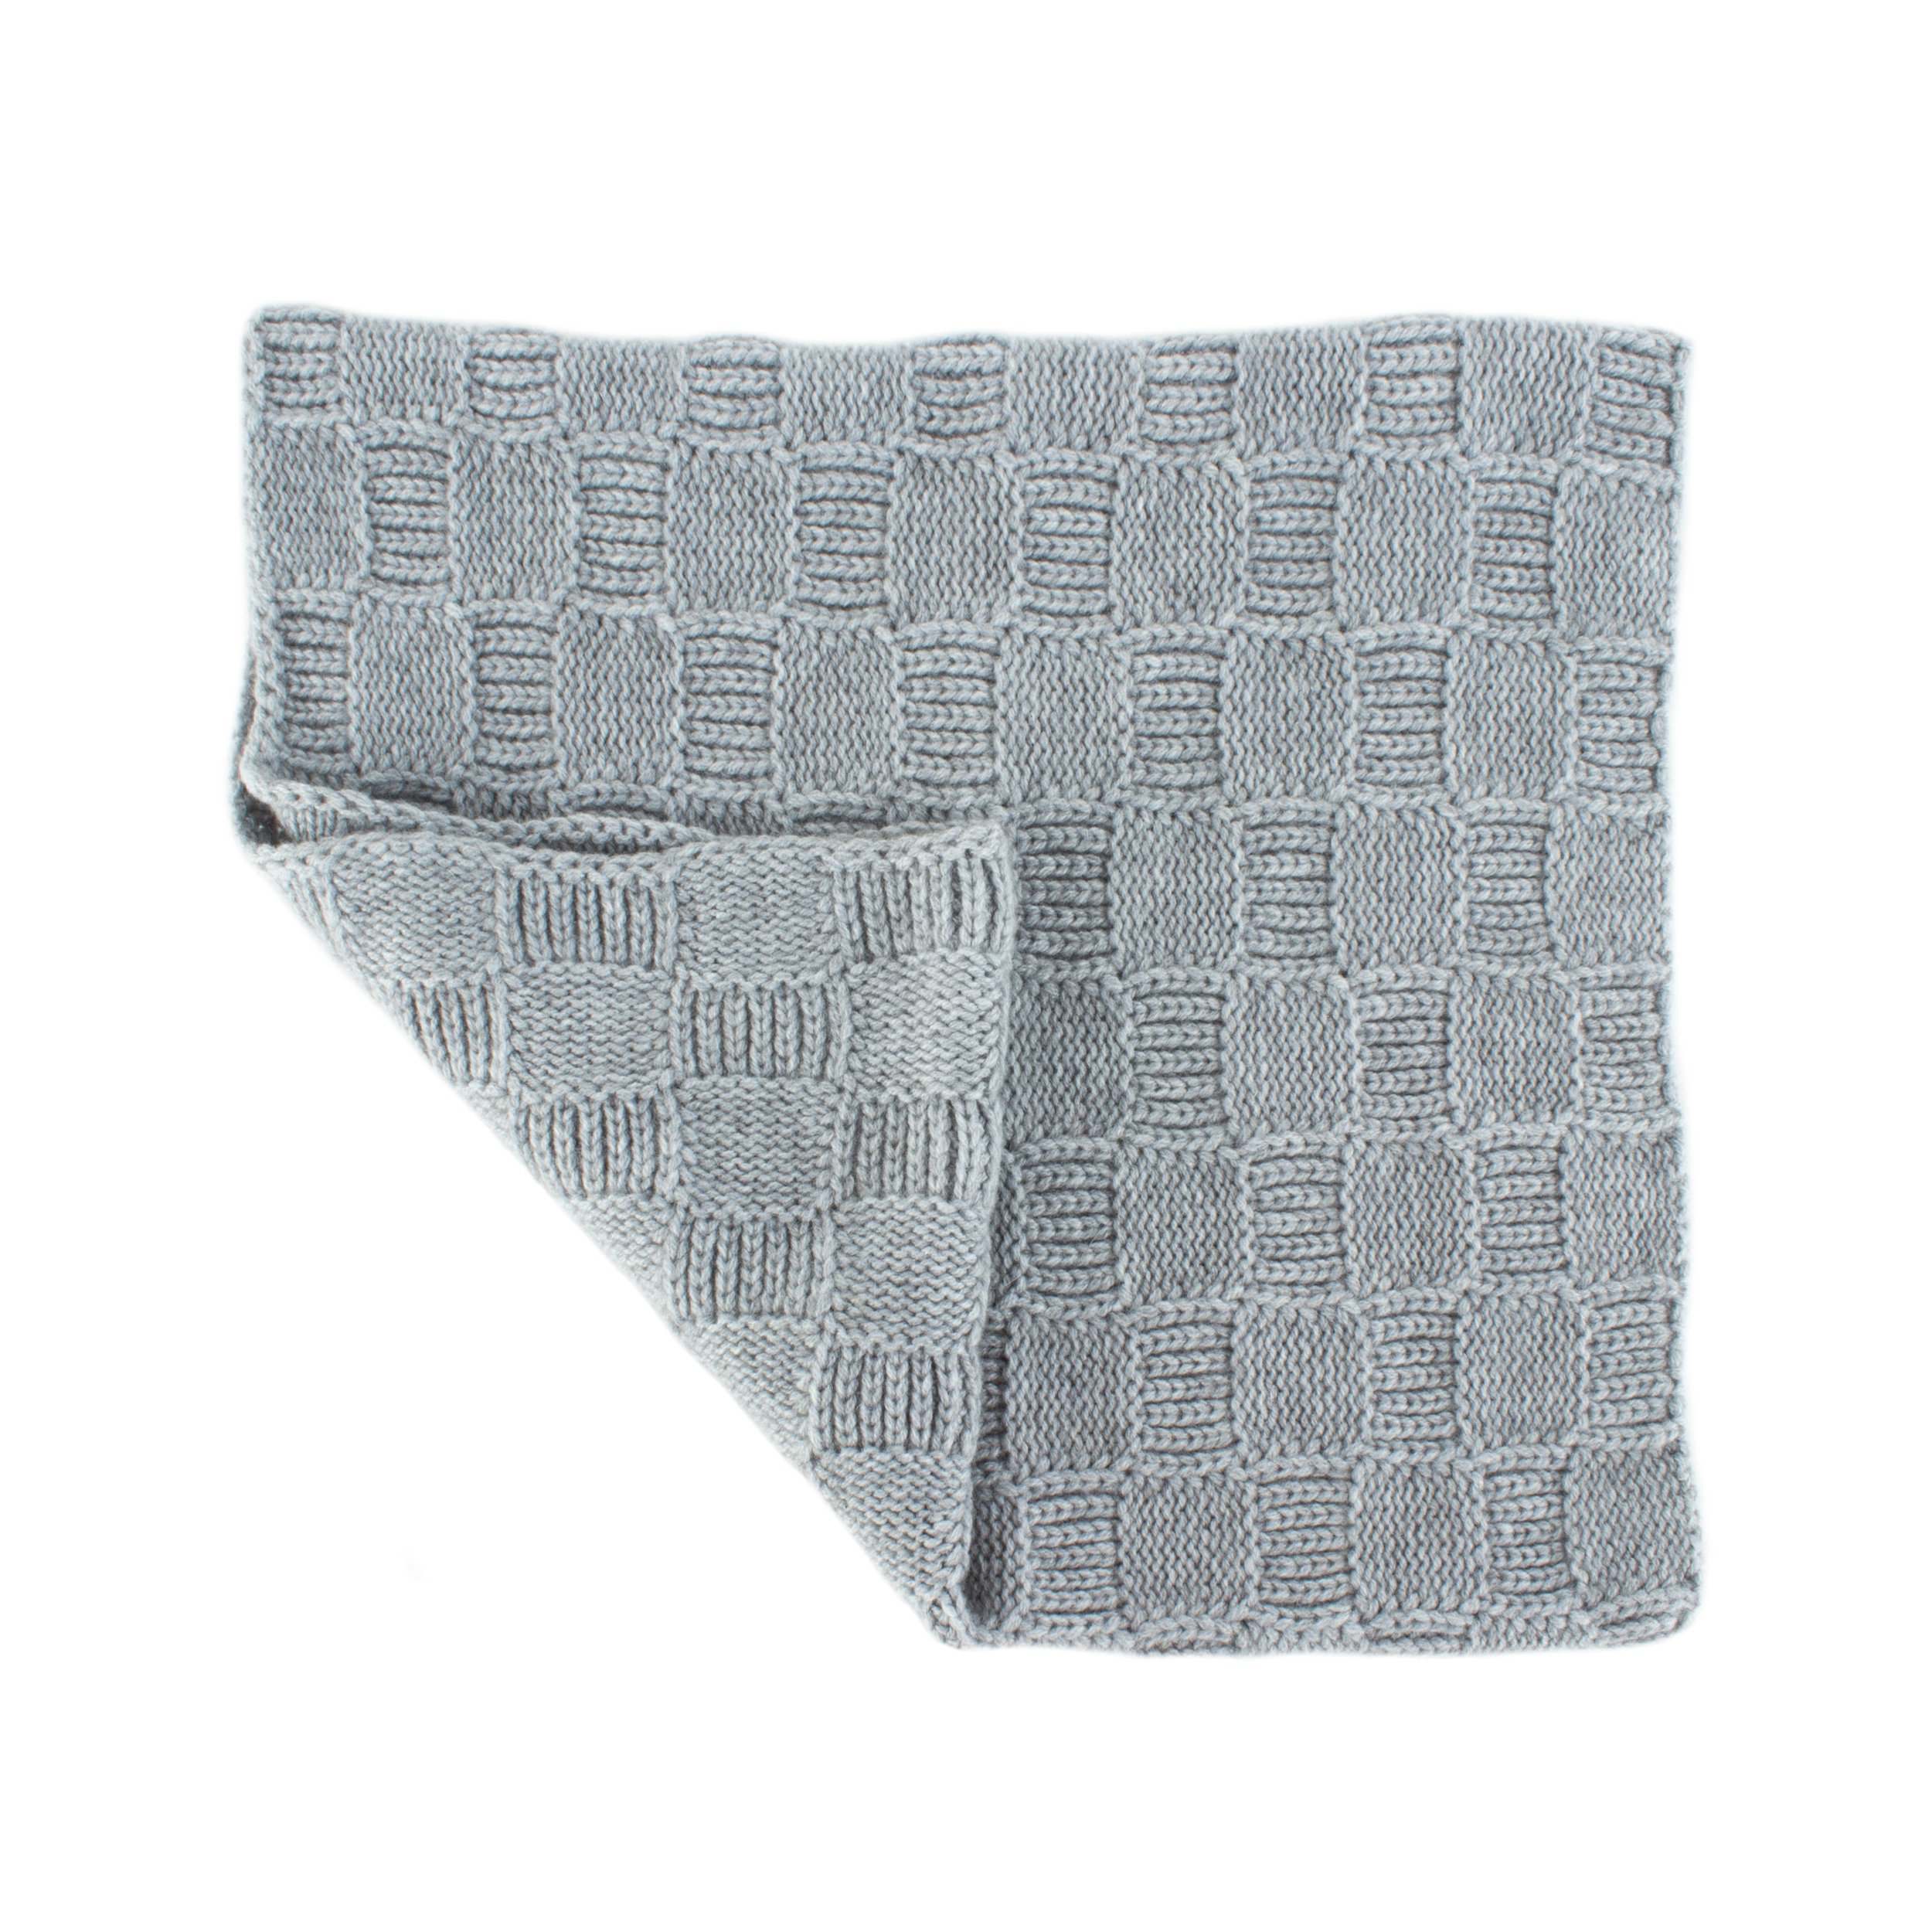 Love Cashmere Mens Checked 100% Cashmere Snood - Light Gray - made in Scotland - RRP $160 by Love Cashmere (Image #3)